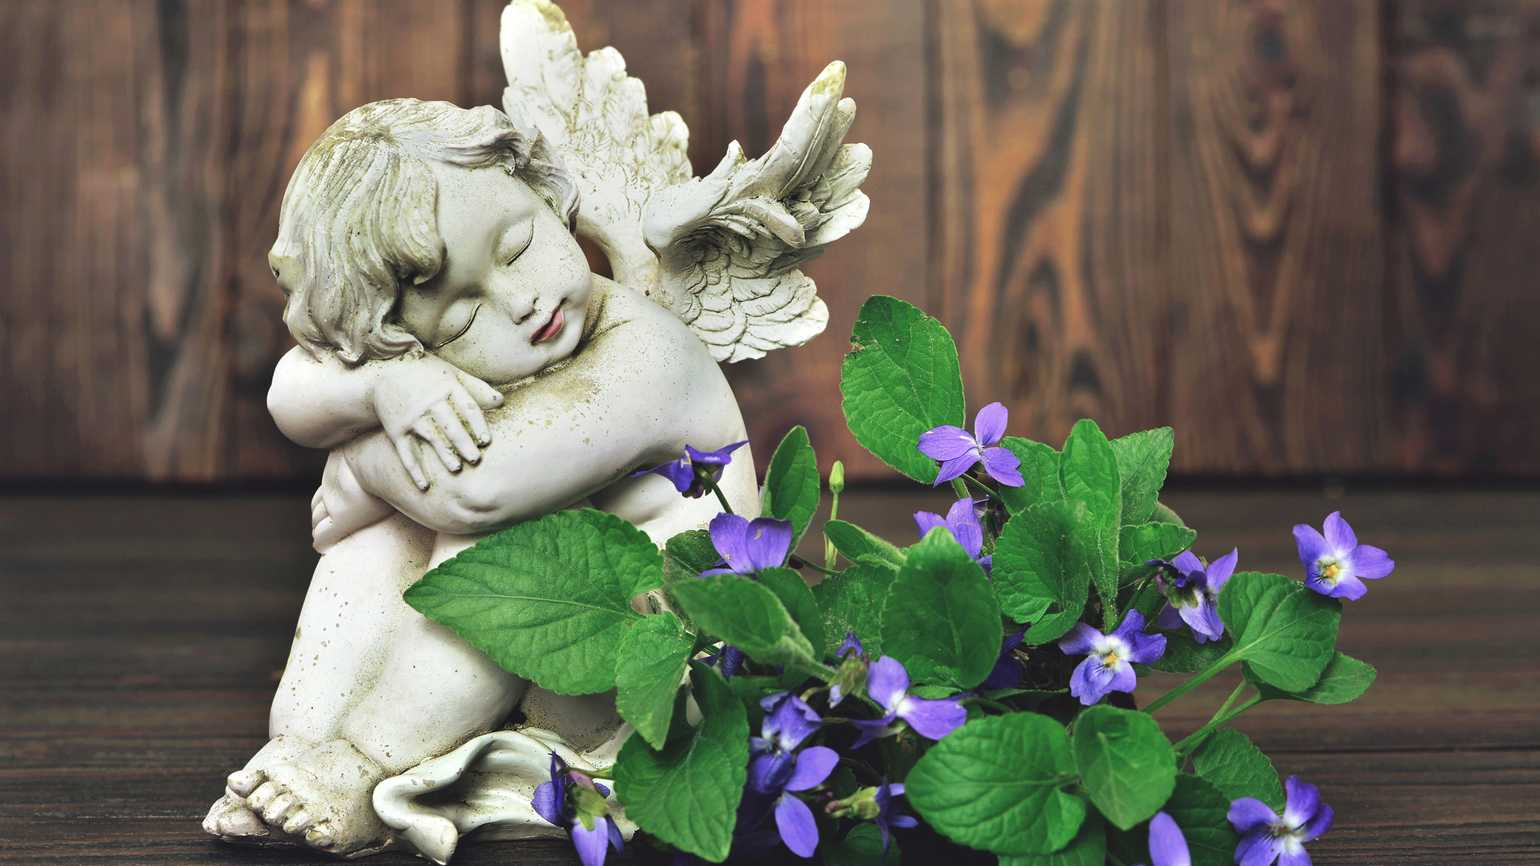 A angel cherub figurine with small, violet flowers.